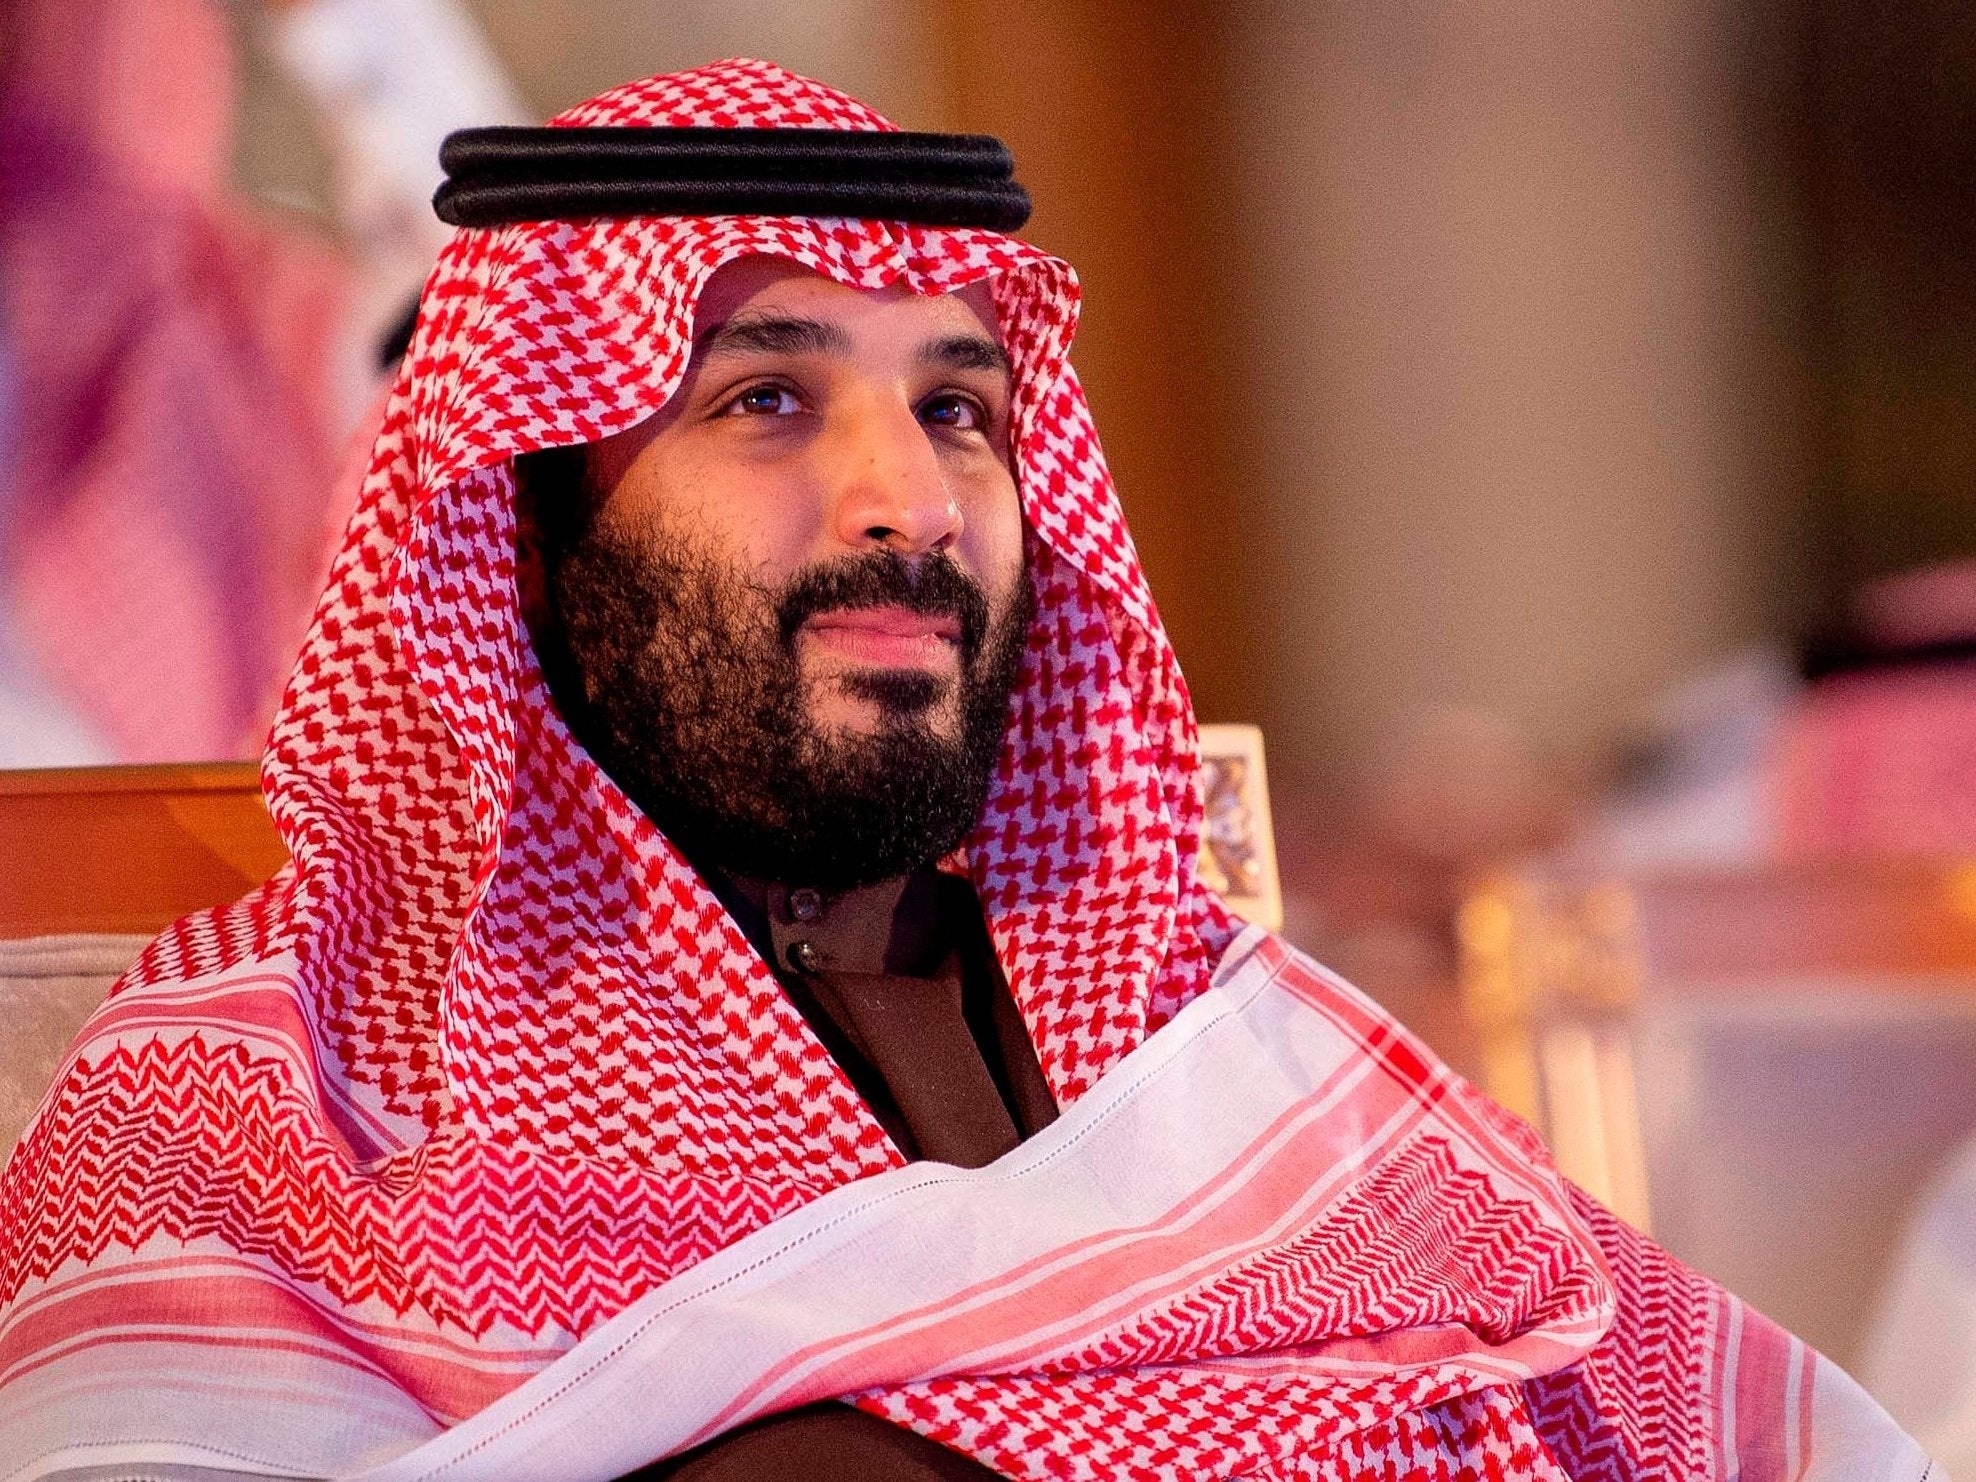 A UN expert has threatened sanctions against MBS. Is he really the kind of ally we need against Iran?